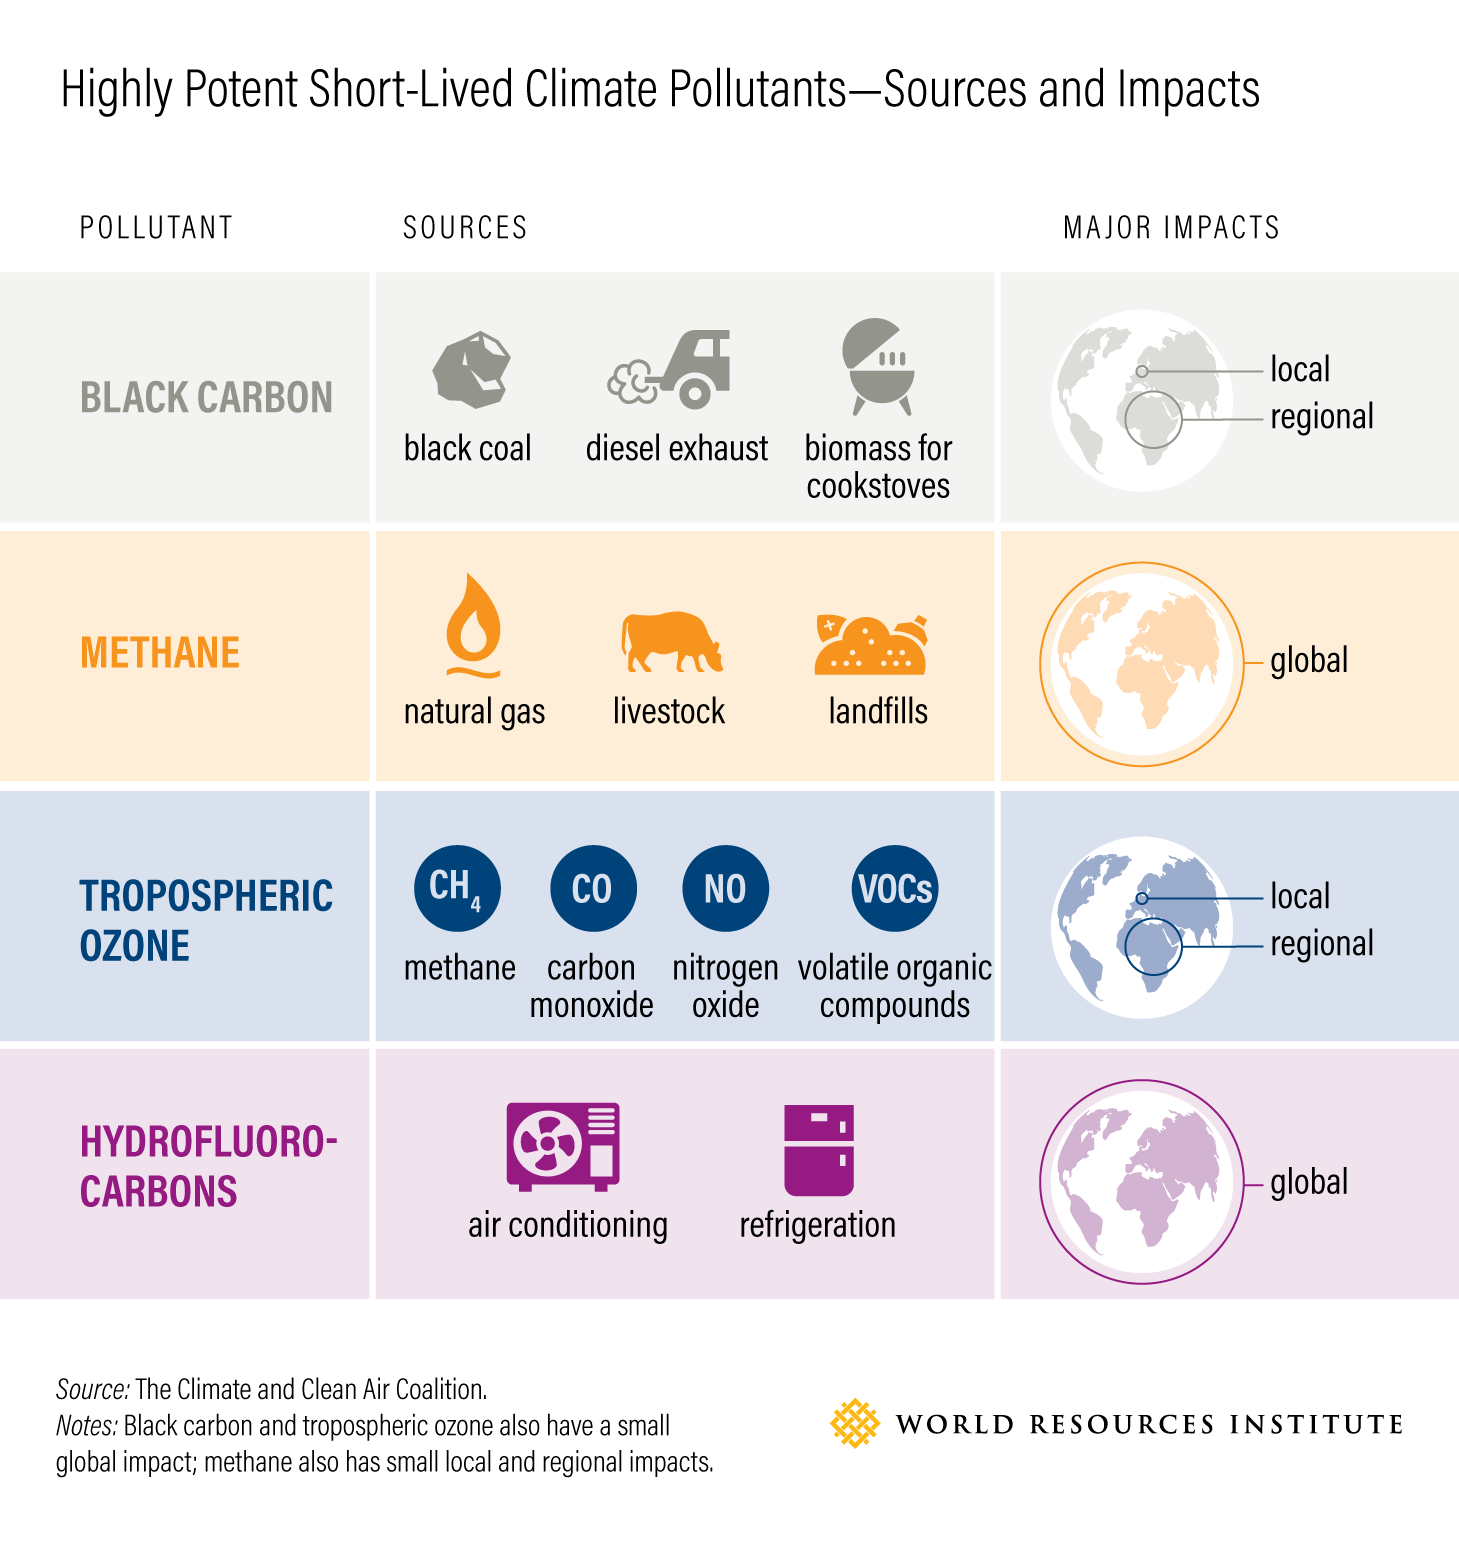 Highly Potent Short-Lived Climate Pollutants—Sources and Impacts